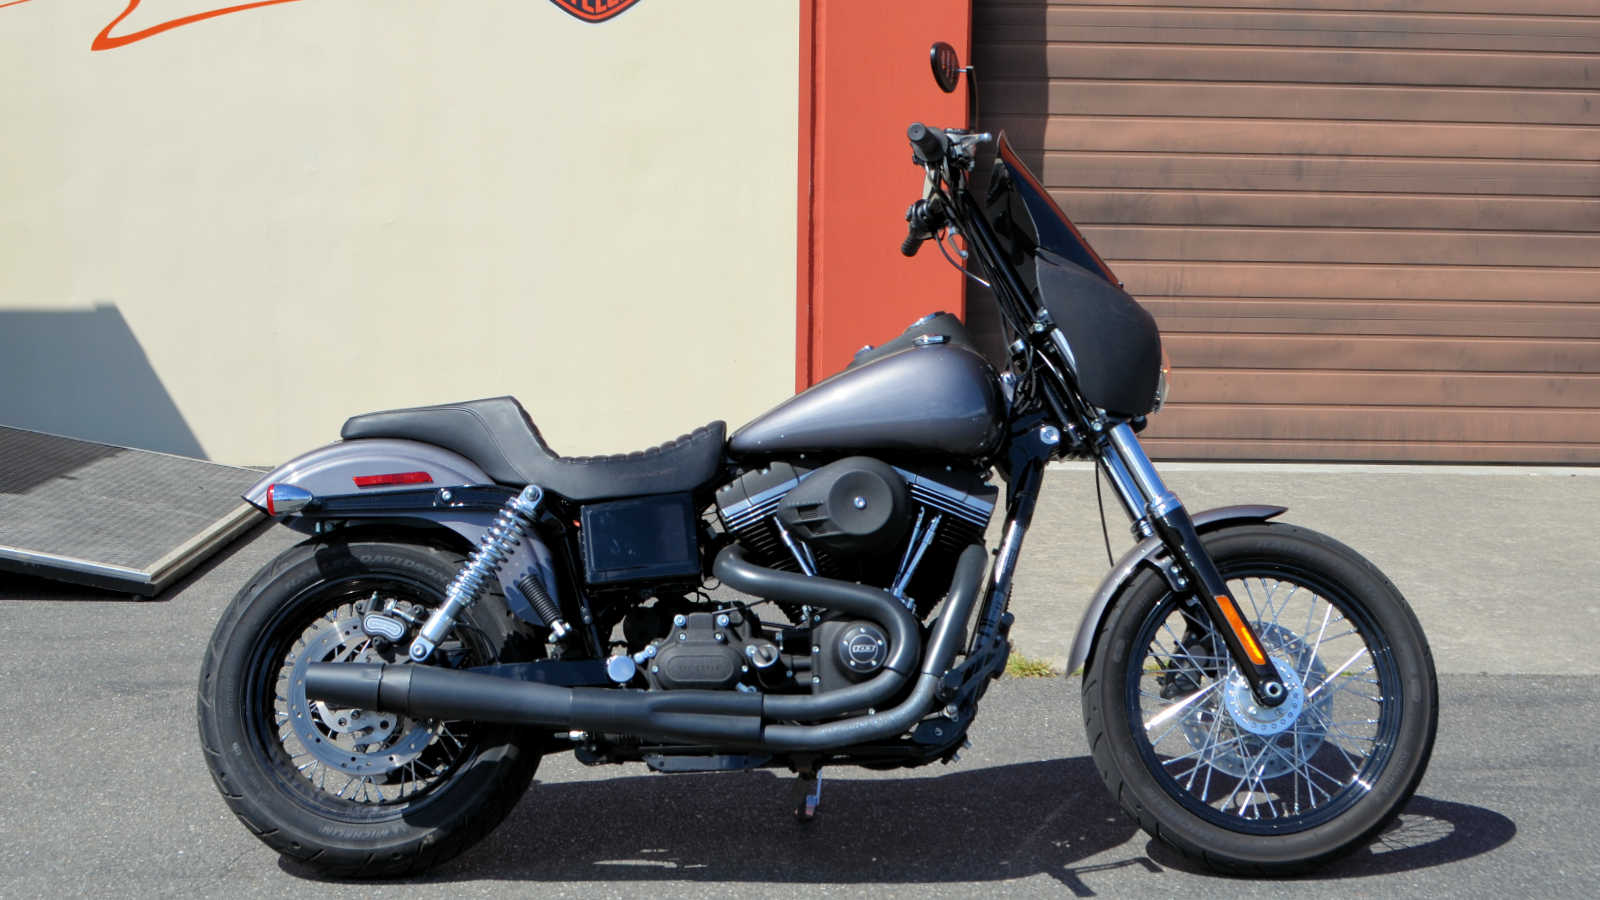 2016 harley davidson fxdb street bob charcoal pearl for sale in